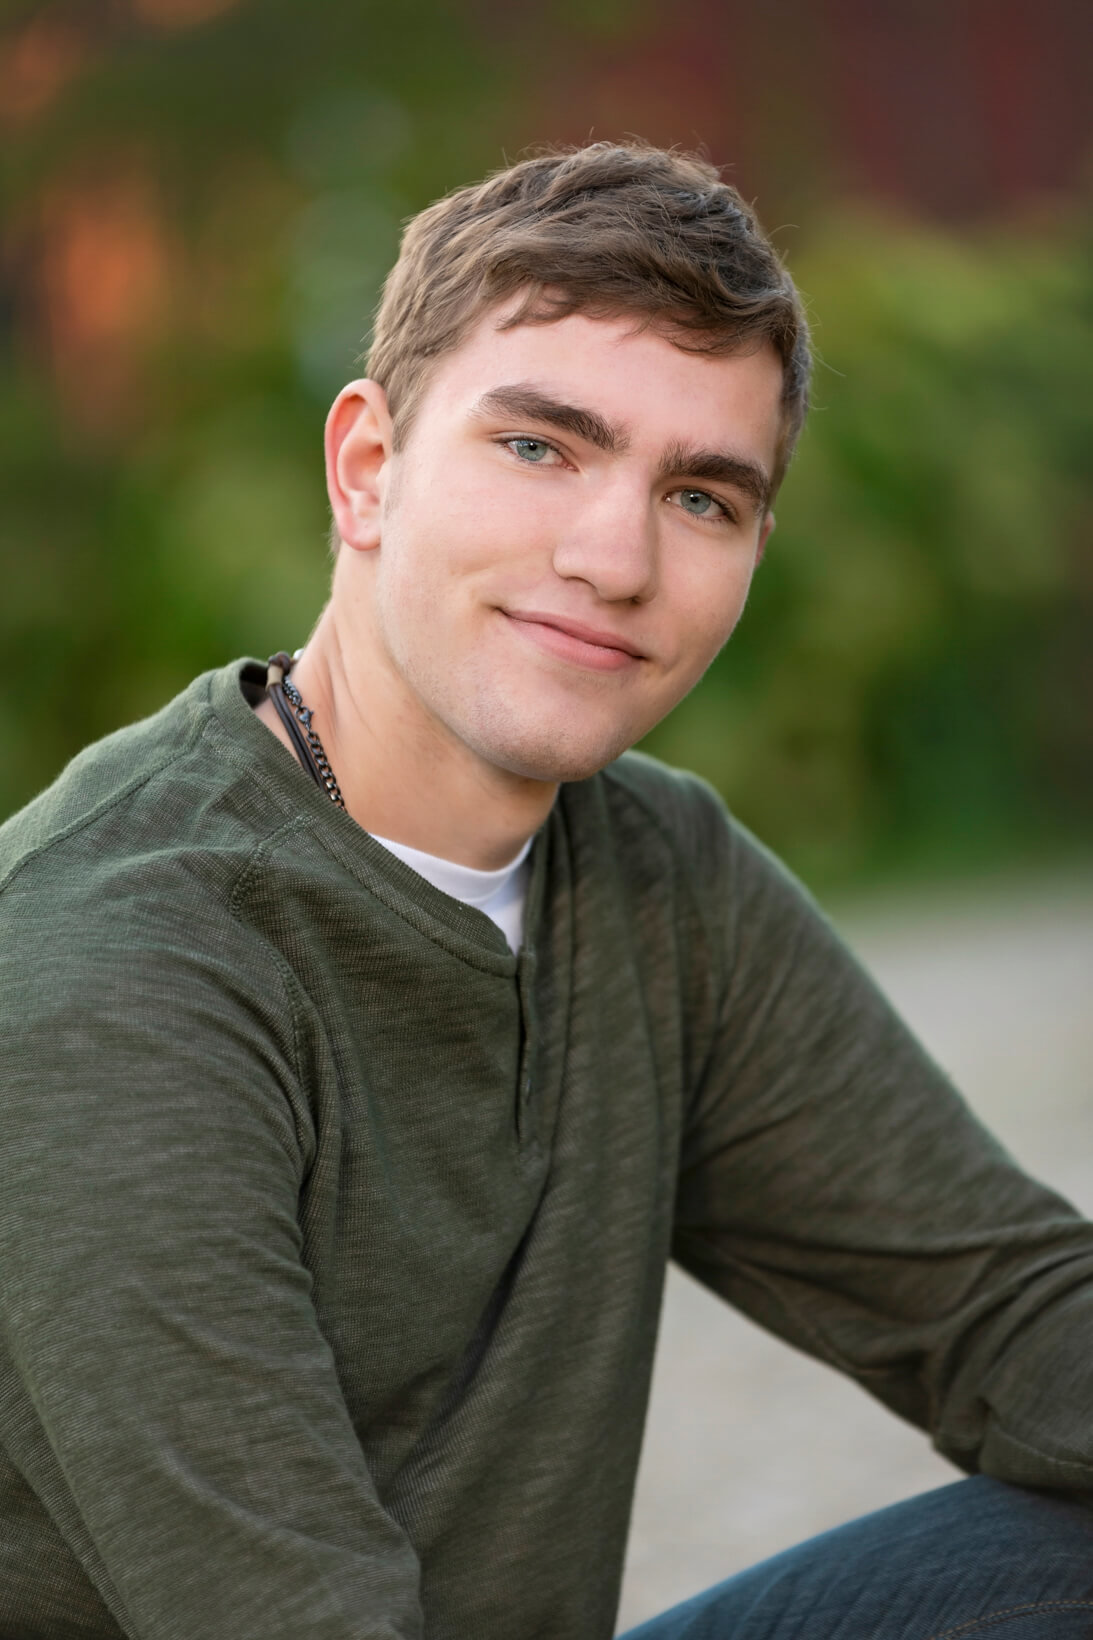 Senior-Pictures-Hartford-Union-High-School-Wisconsin-126